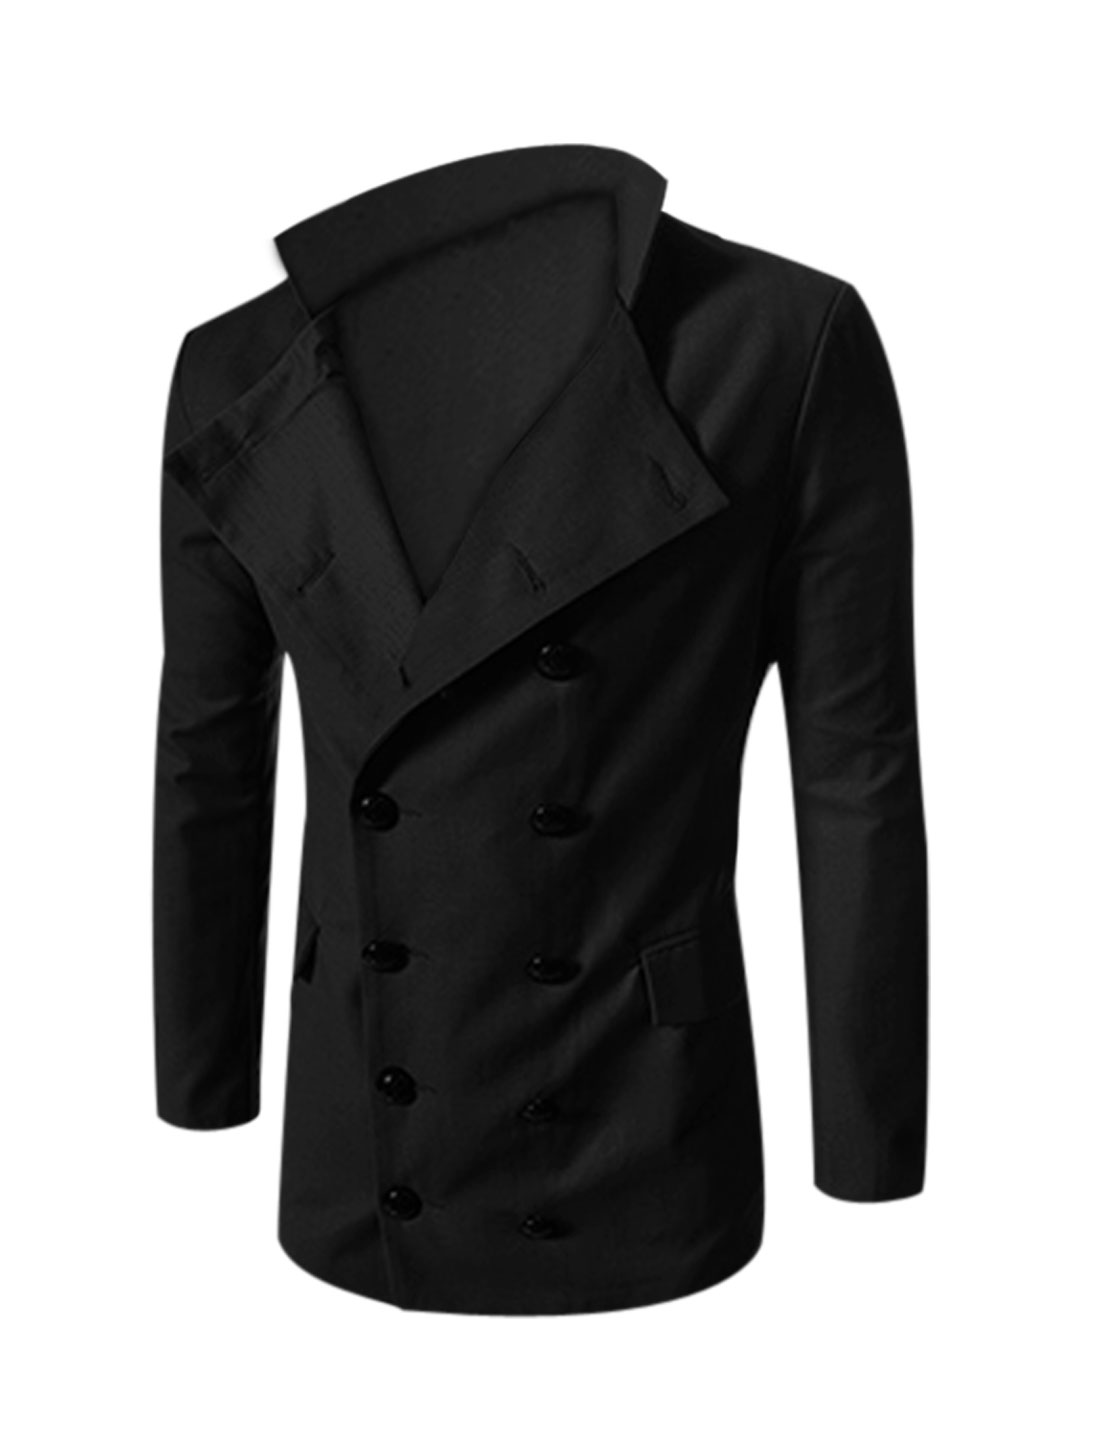 Man Black Double Breasted Front Pockets Split Back Convertible Collar Blazer Jacket L